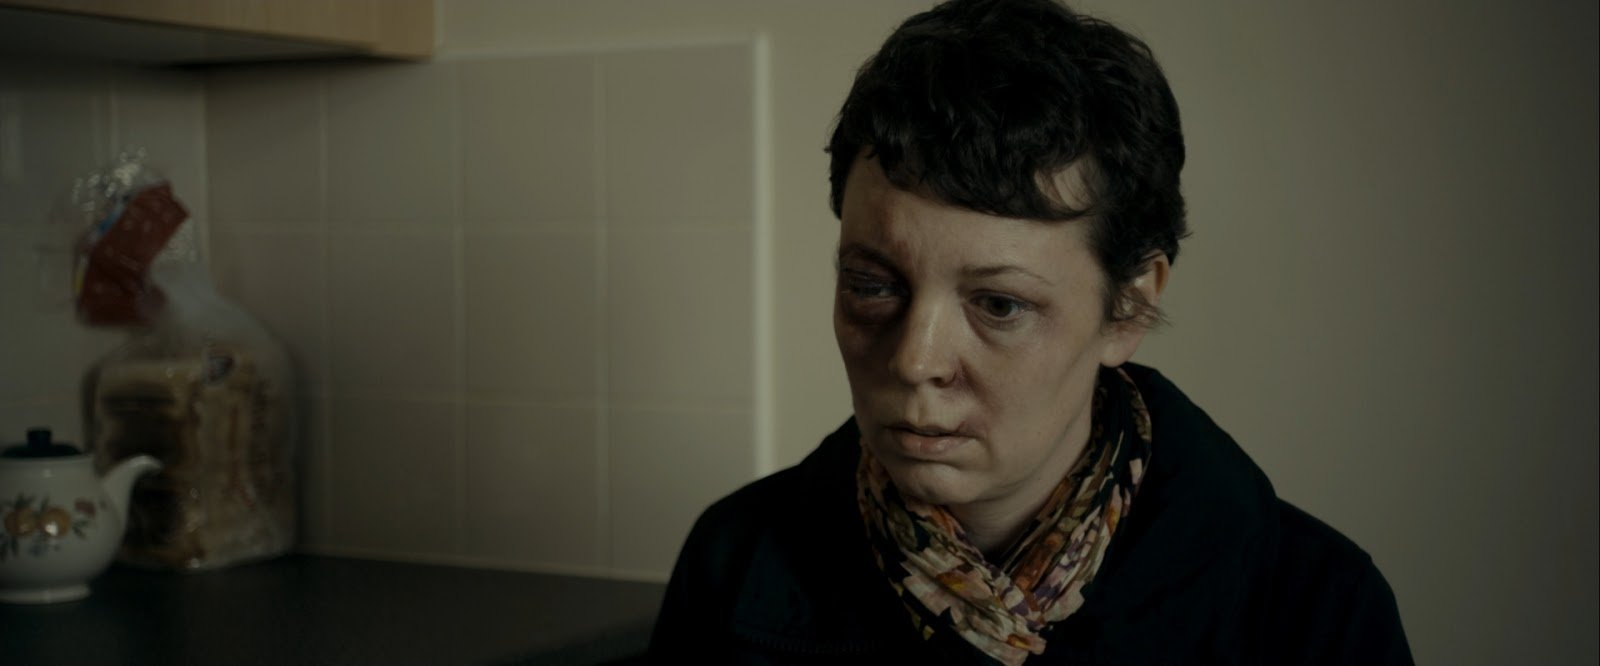 Olivia Colman as Hannah in the movie Tyrannosaur